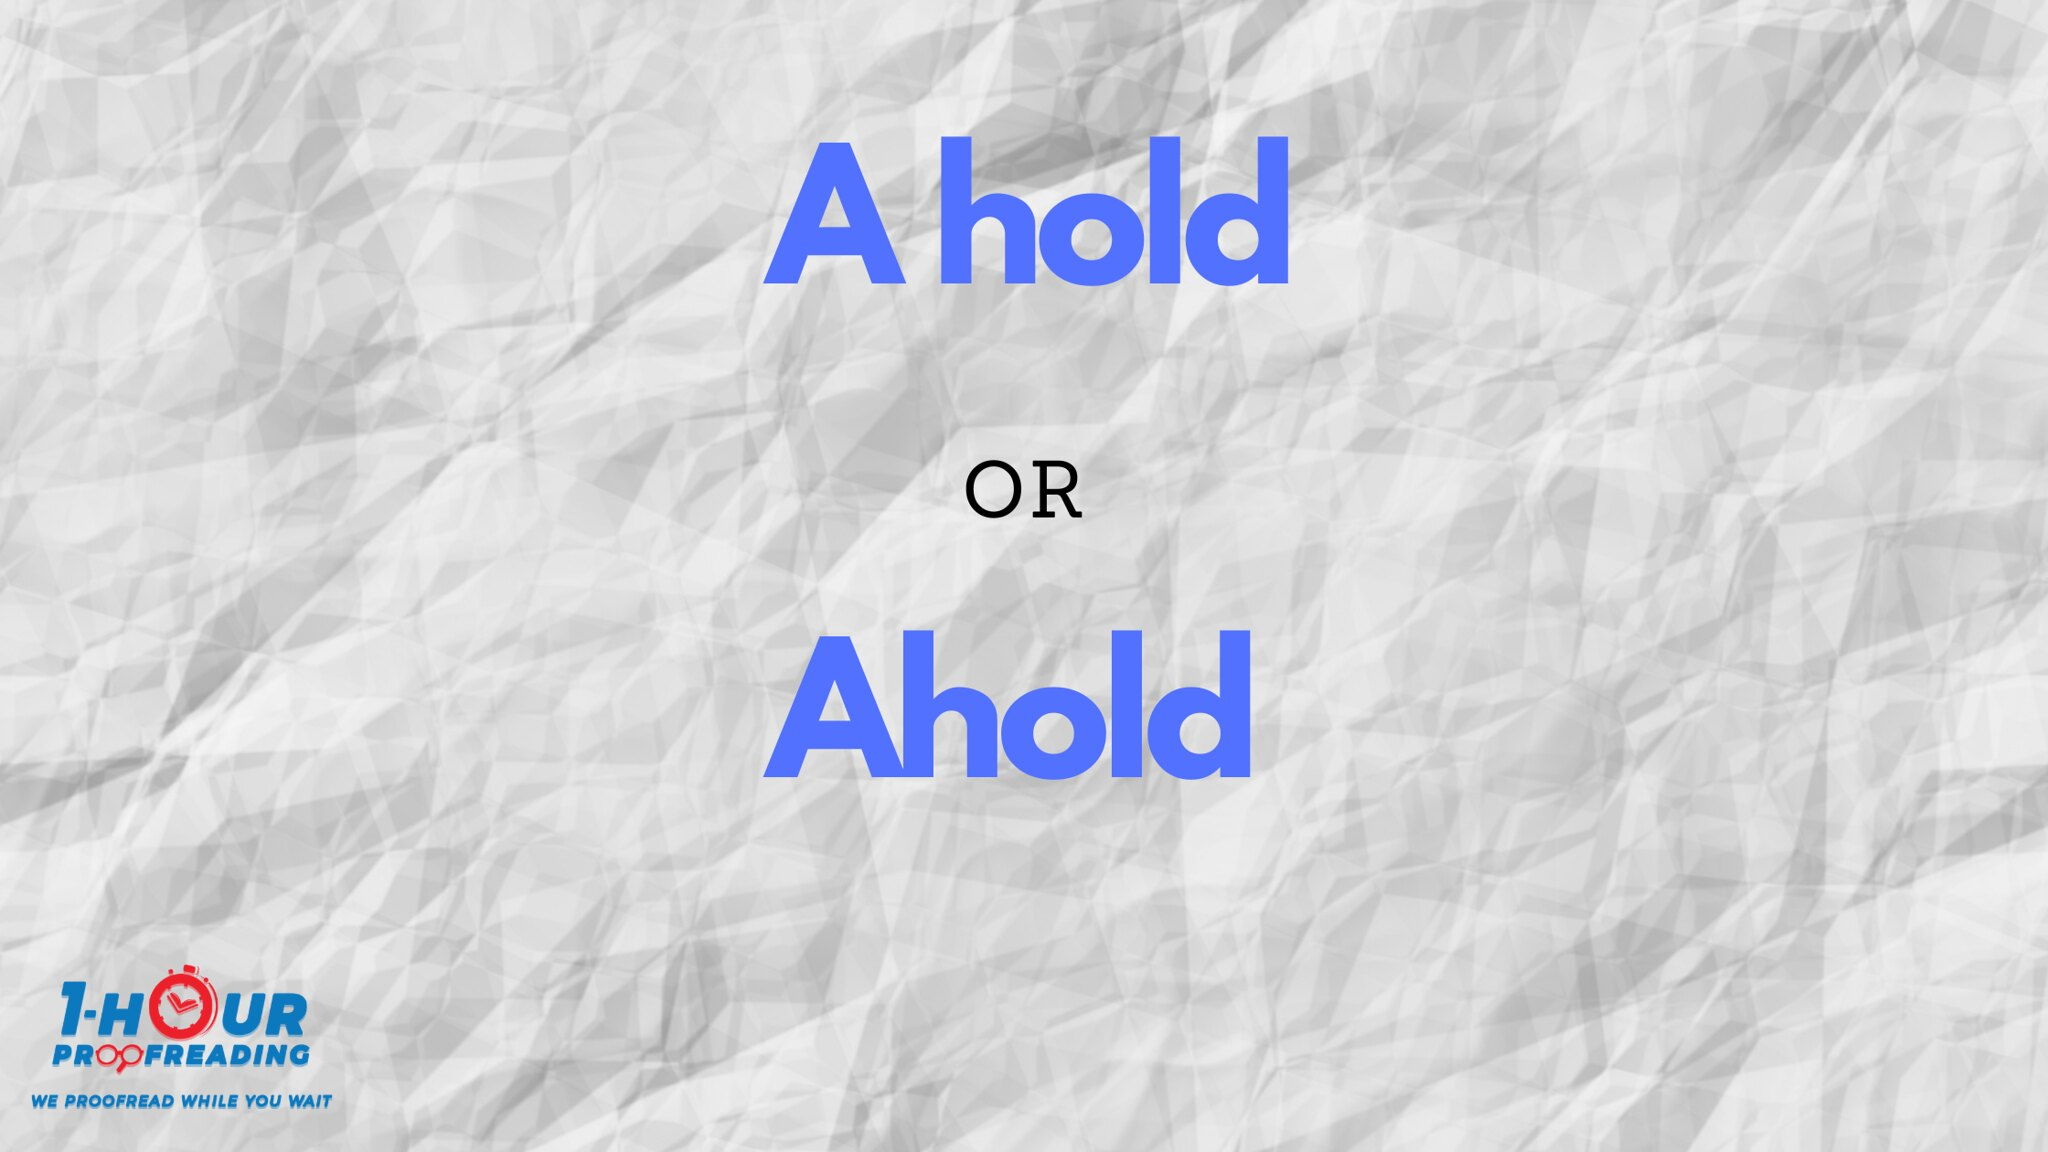 A Hold from Ahold